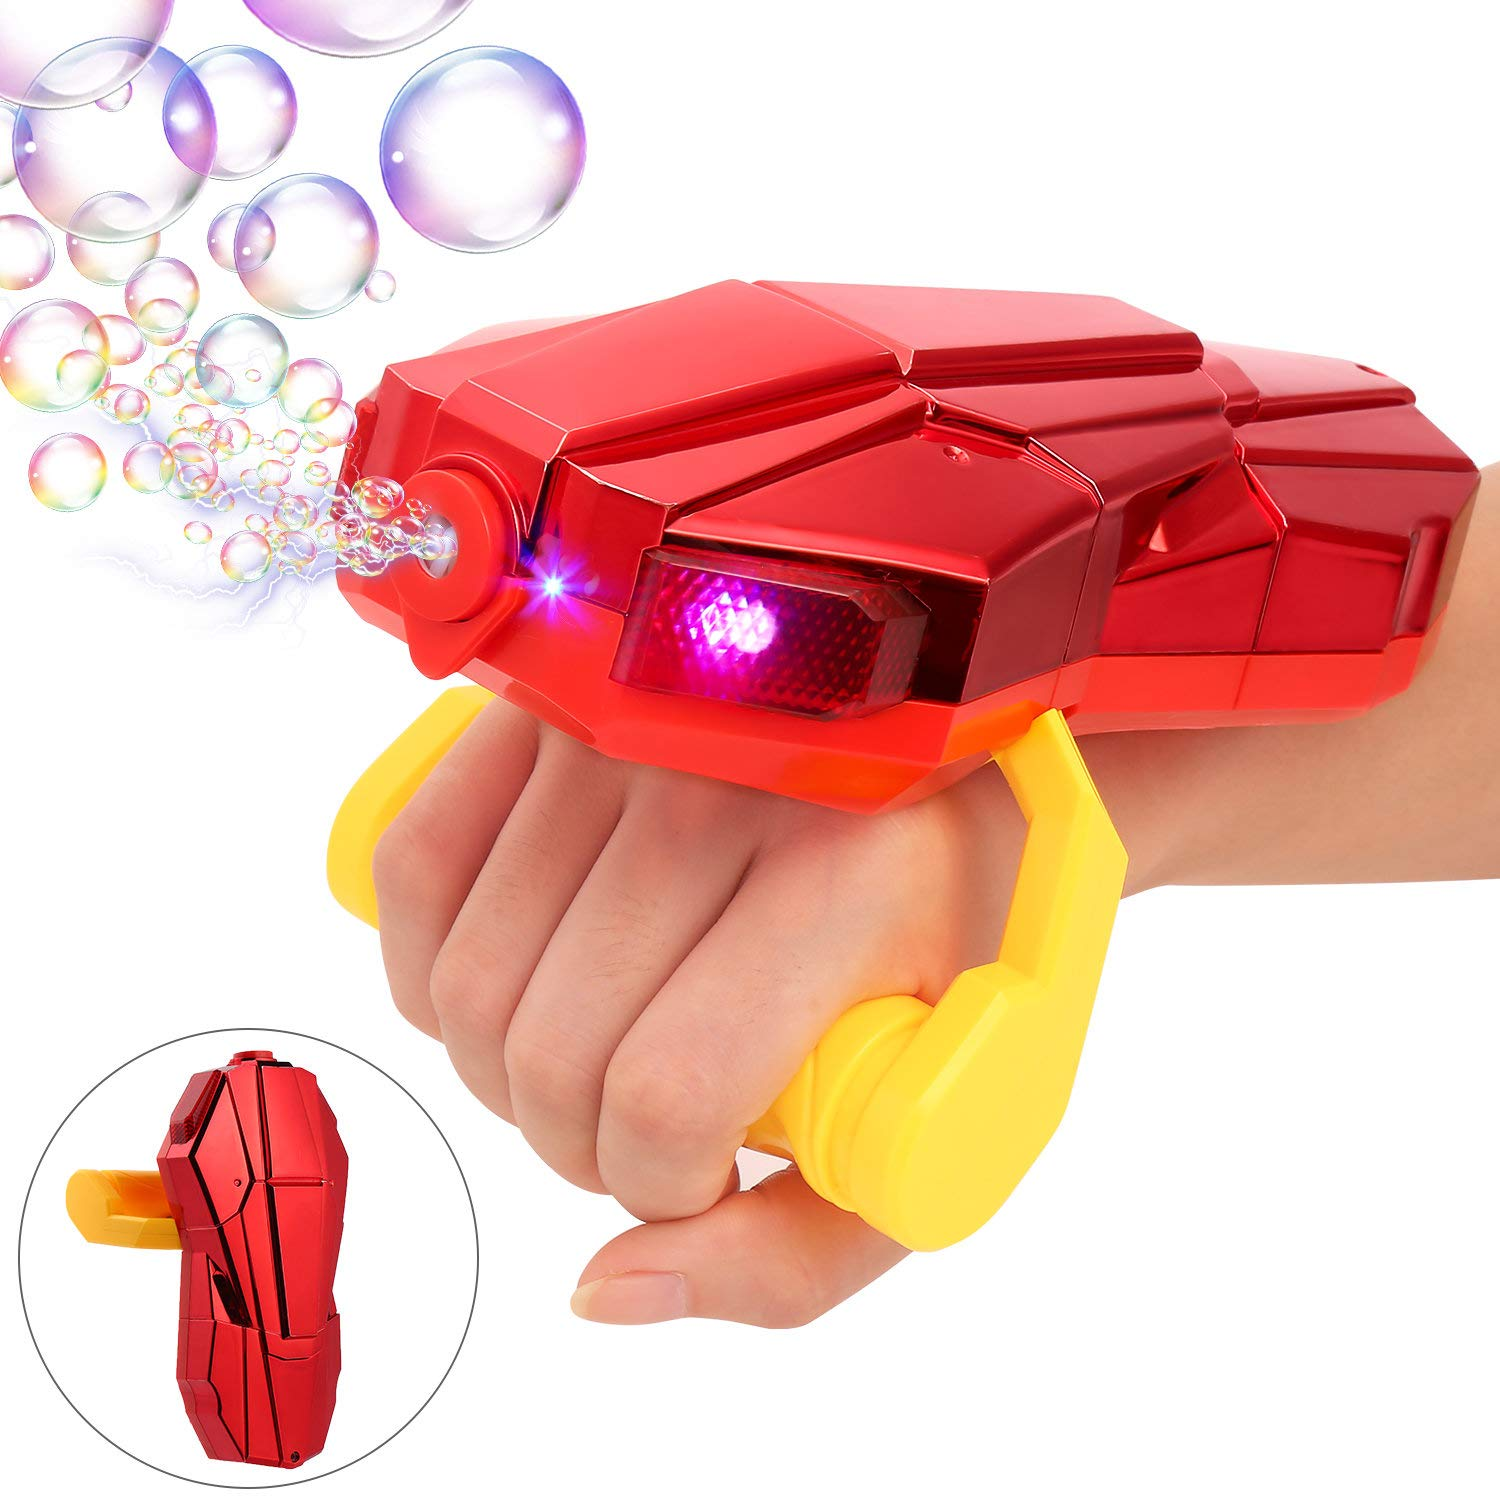 Auney Handheld Bubble Machine with Light, Automatic LED Bubble Blower Bubble Maker More Than 2000 Bubbles Per Minute, Bubble Machine for Kids, Red Bubble Toy with Sound for 1 2 3 4 5 Year Old Kids